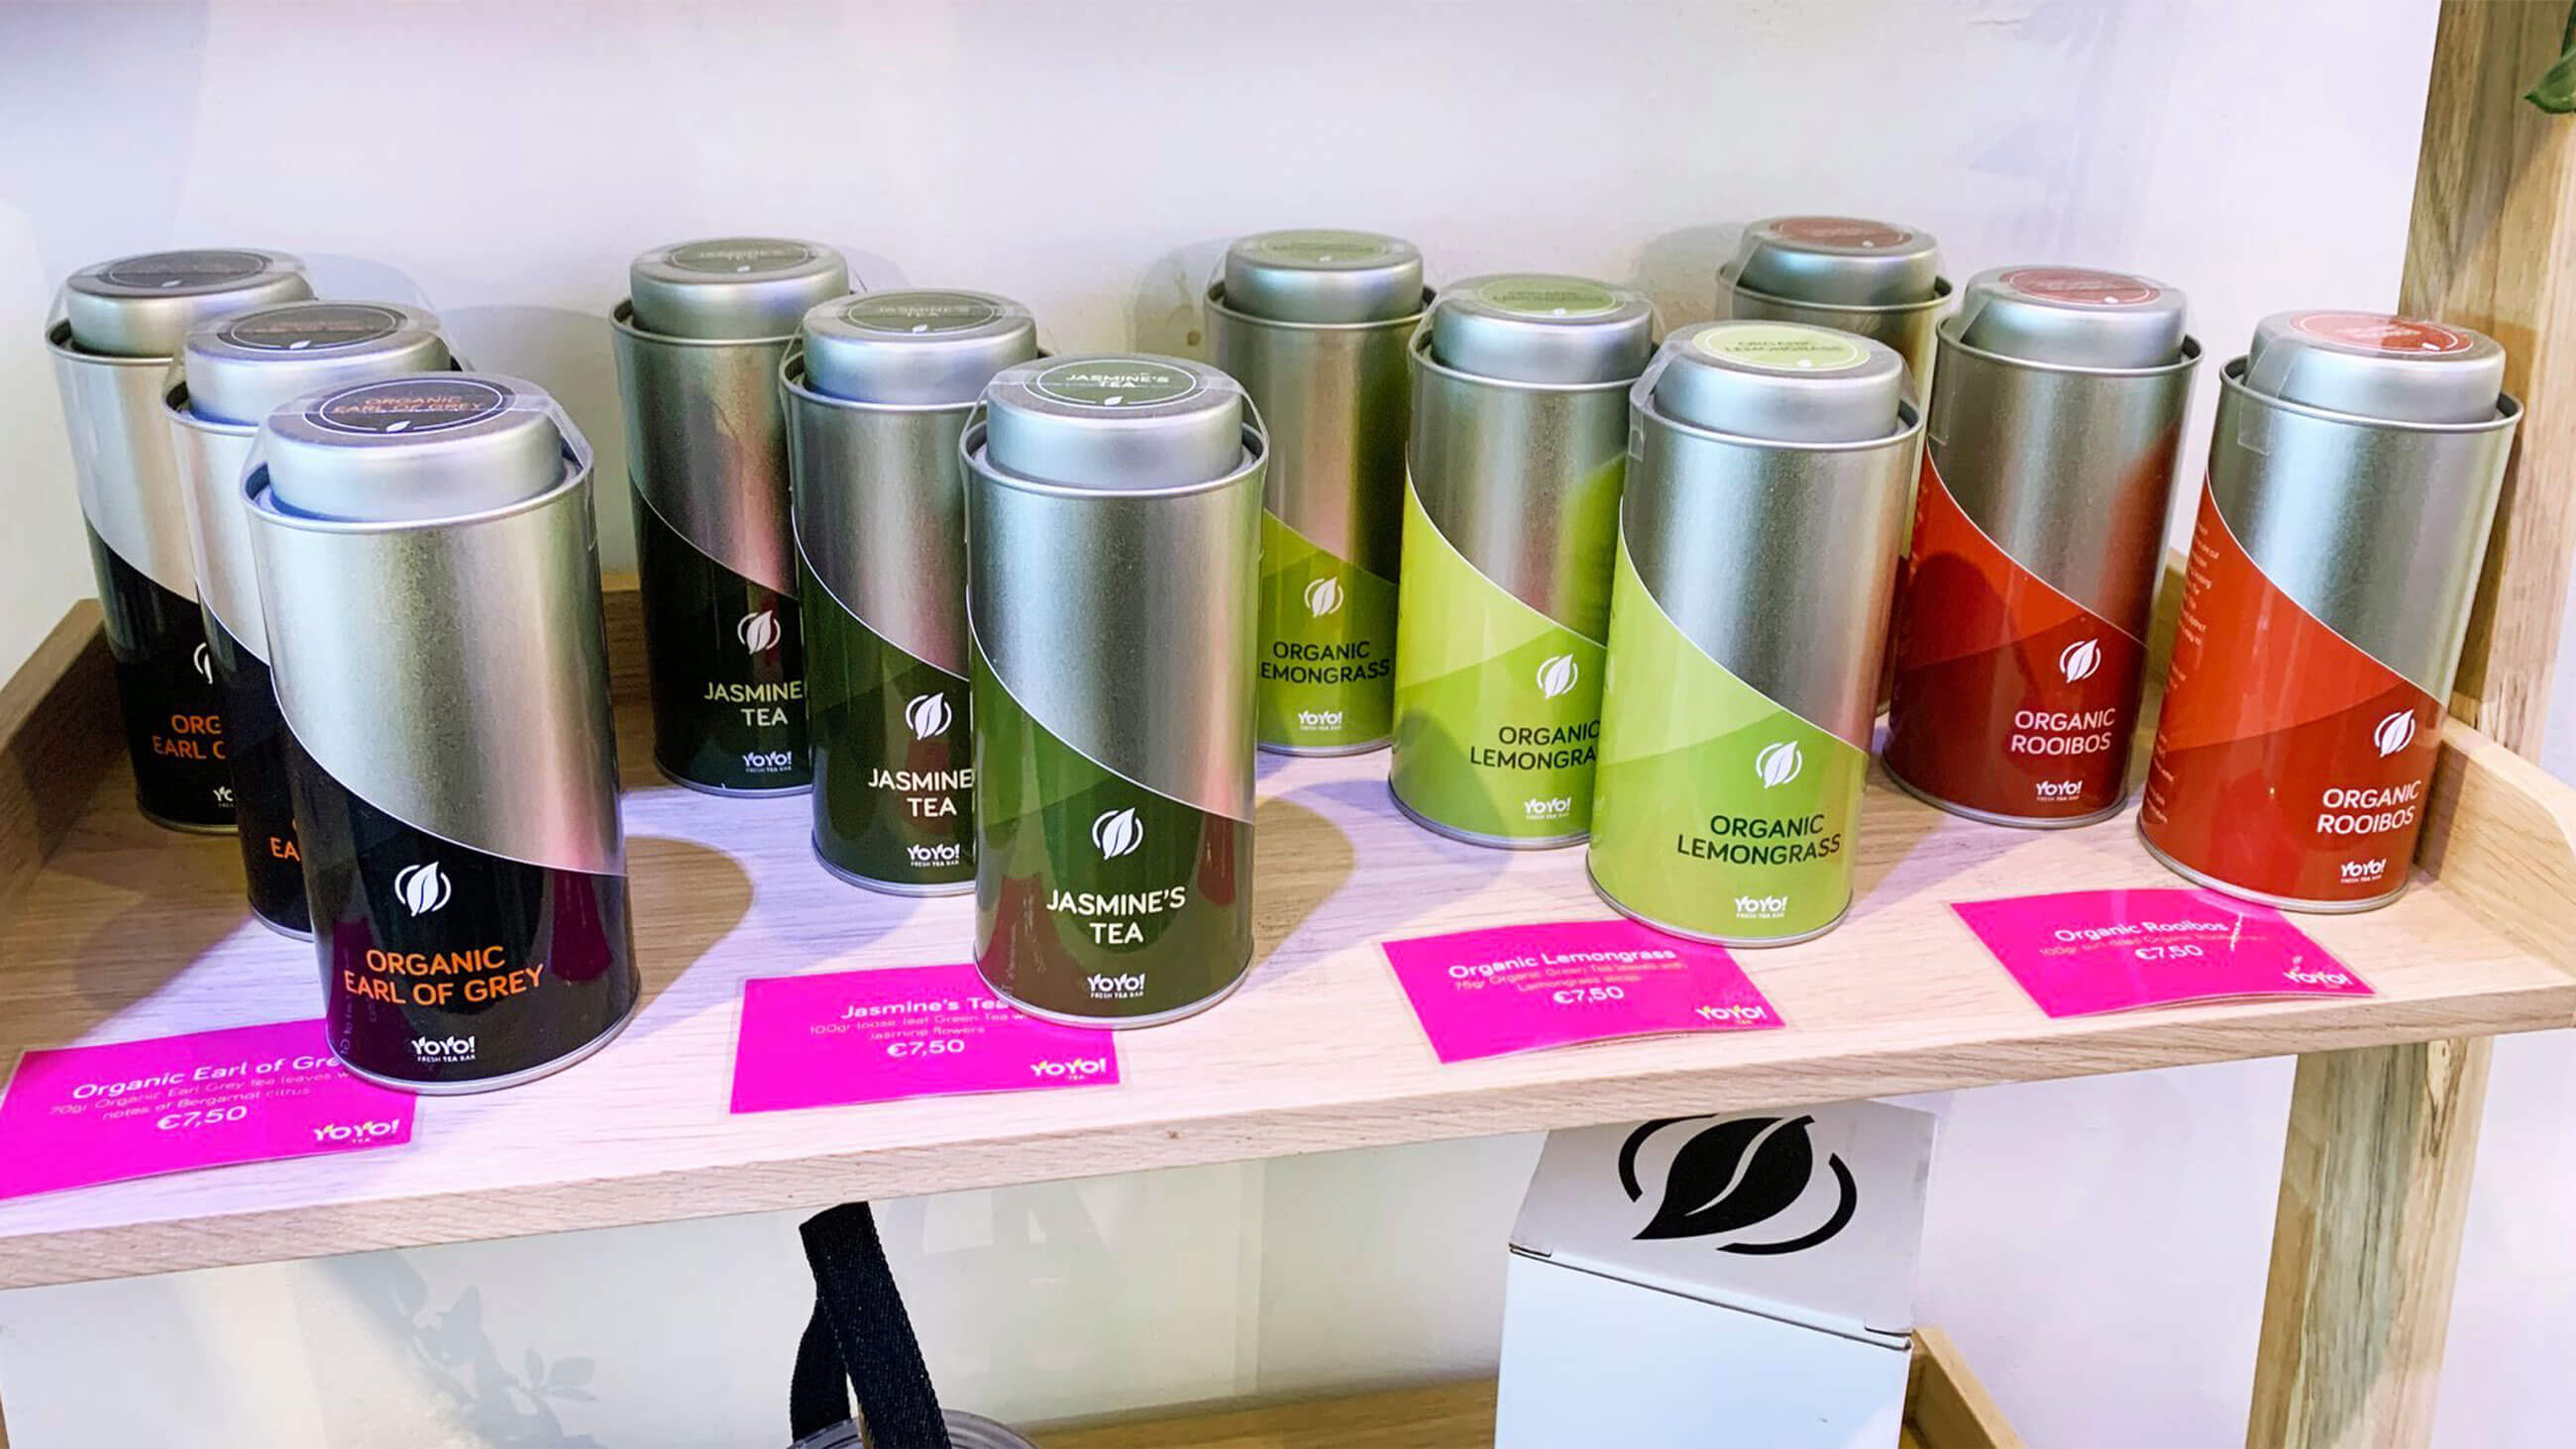 YoYo! Fresh Tea Bar, visuele communicatie, Mixus studio